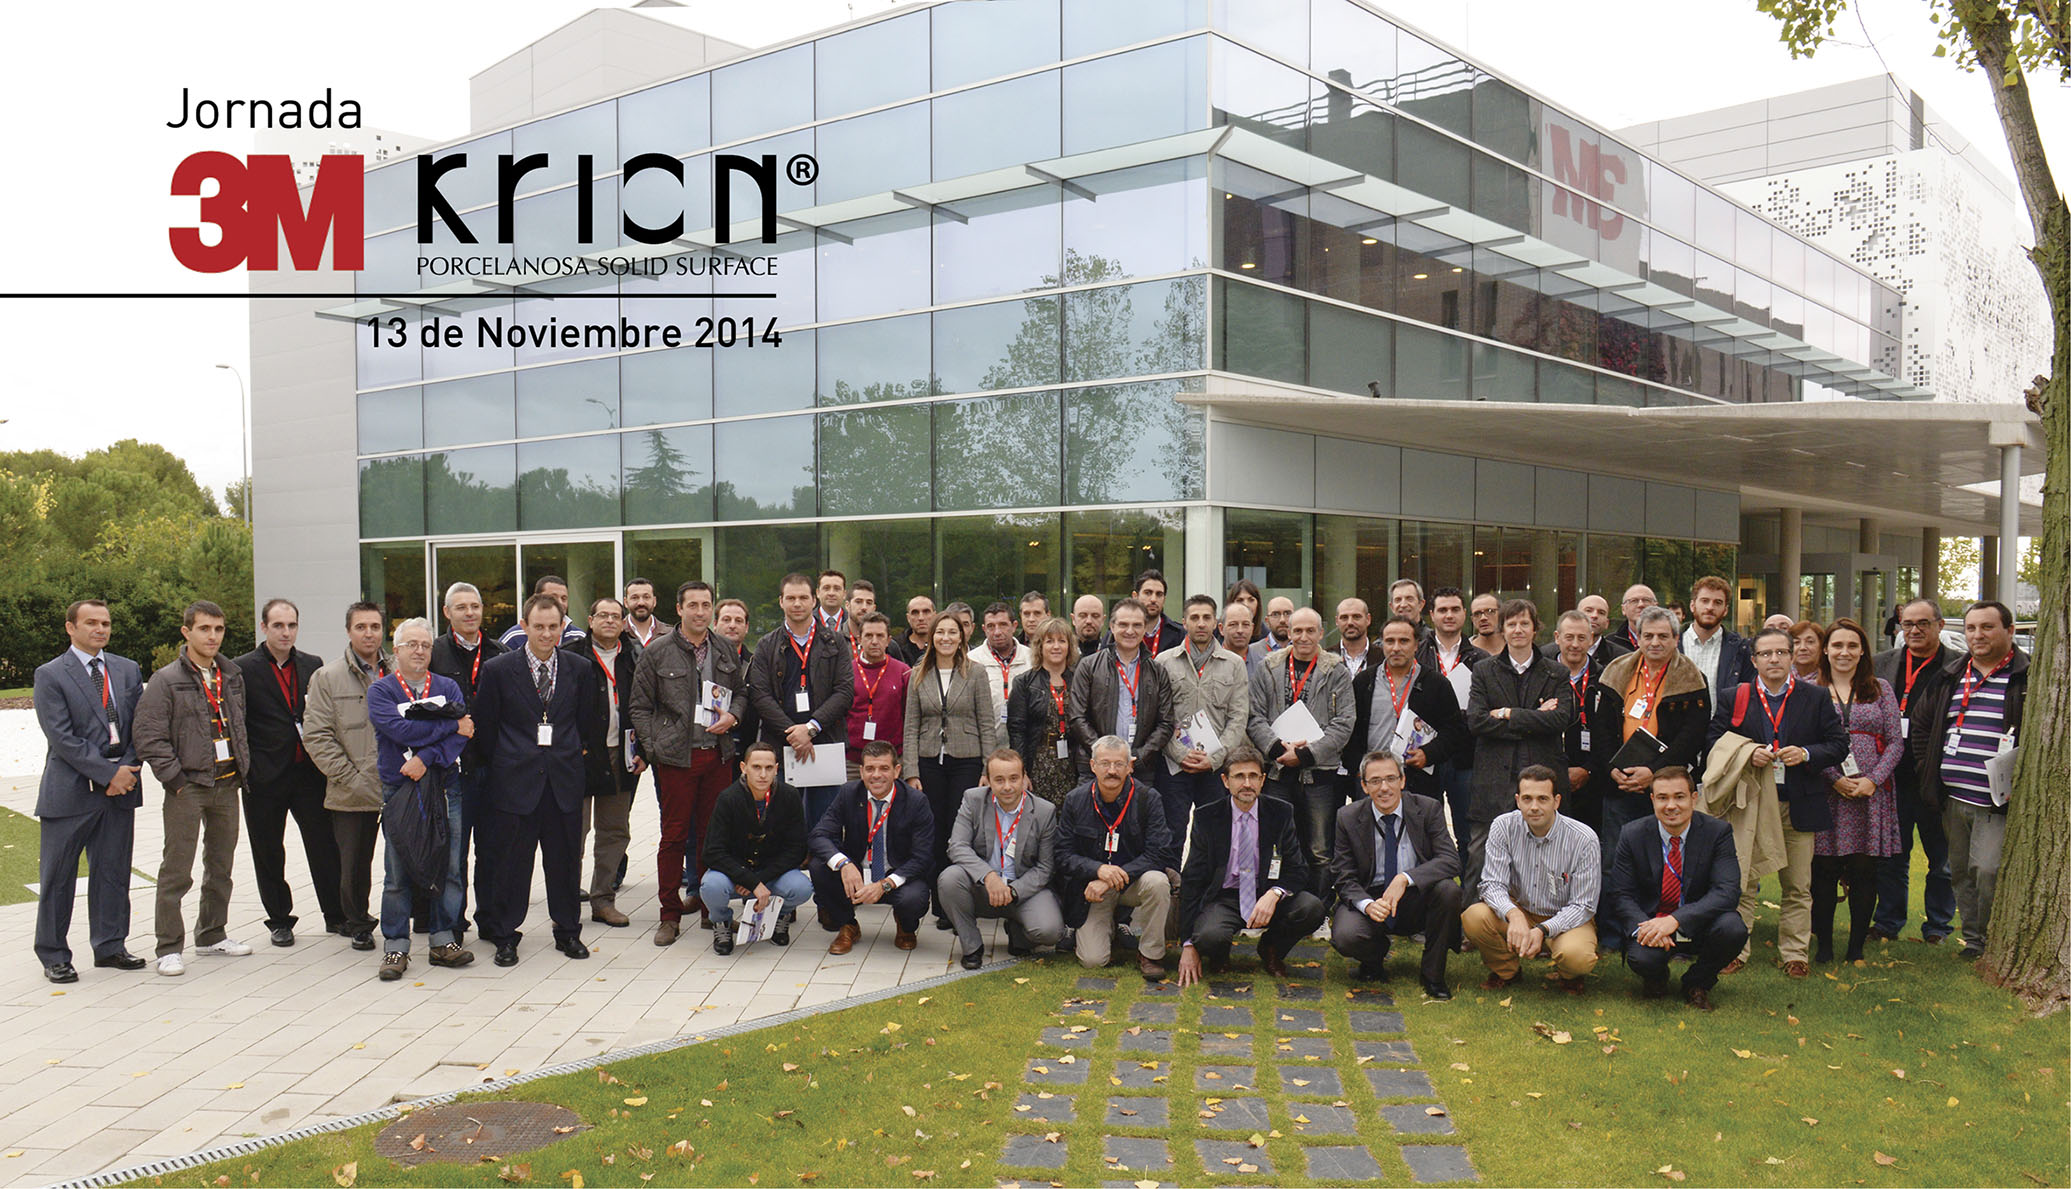 3M Conference & KRION® PORCELANOSA Solid Surface